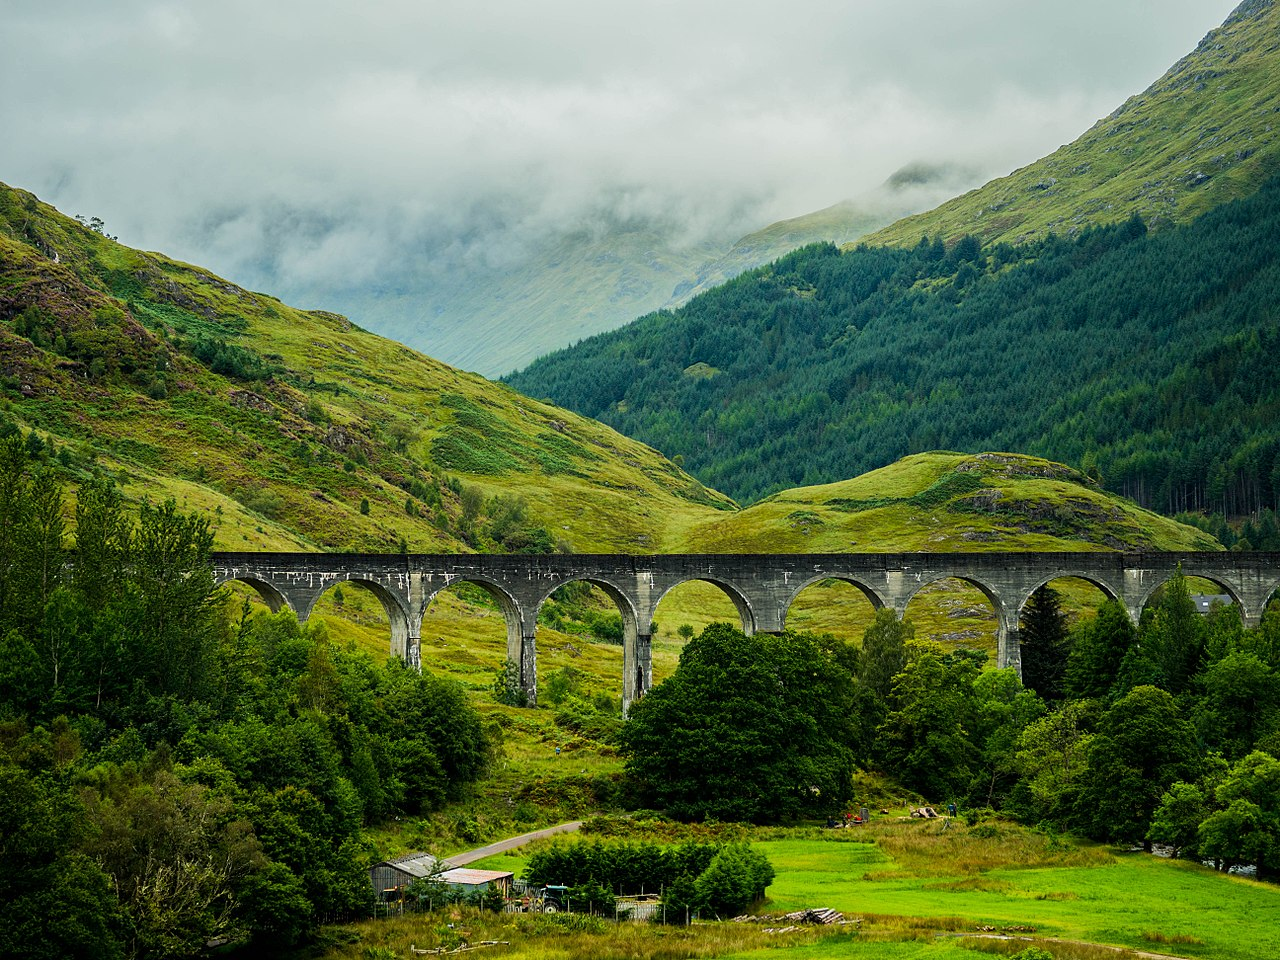 Viaduct at Loch Shiel, by Paul Stümke